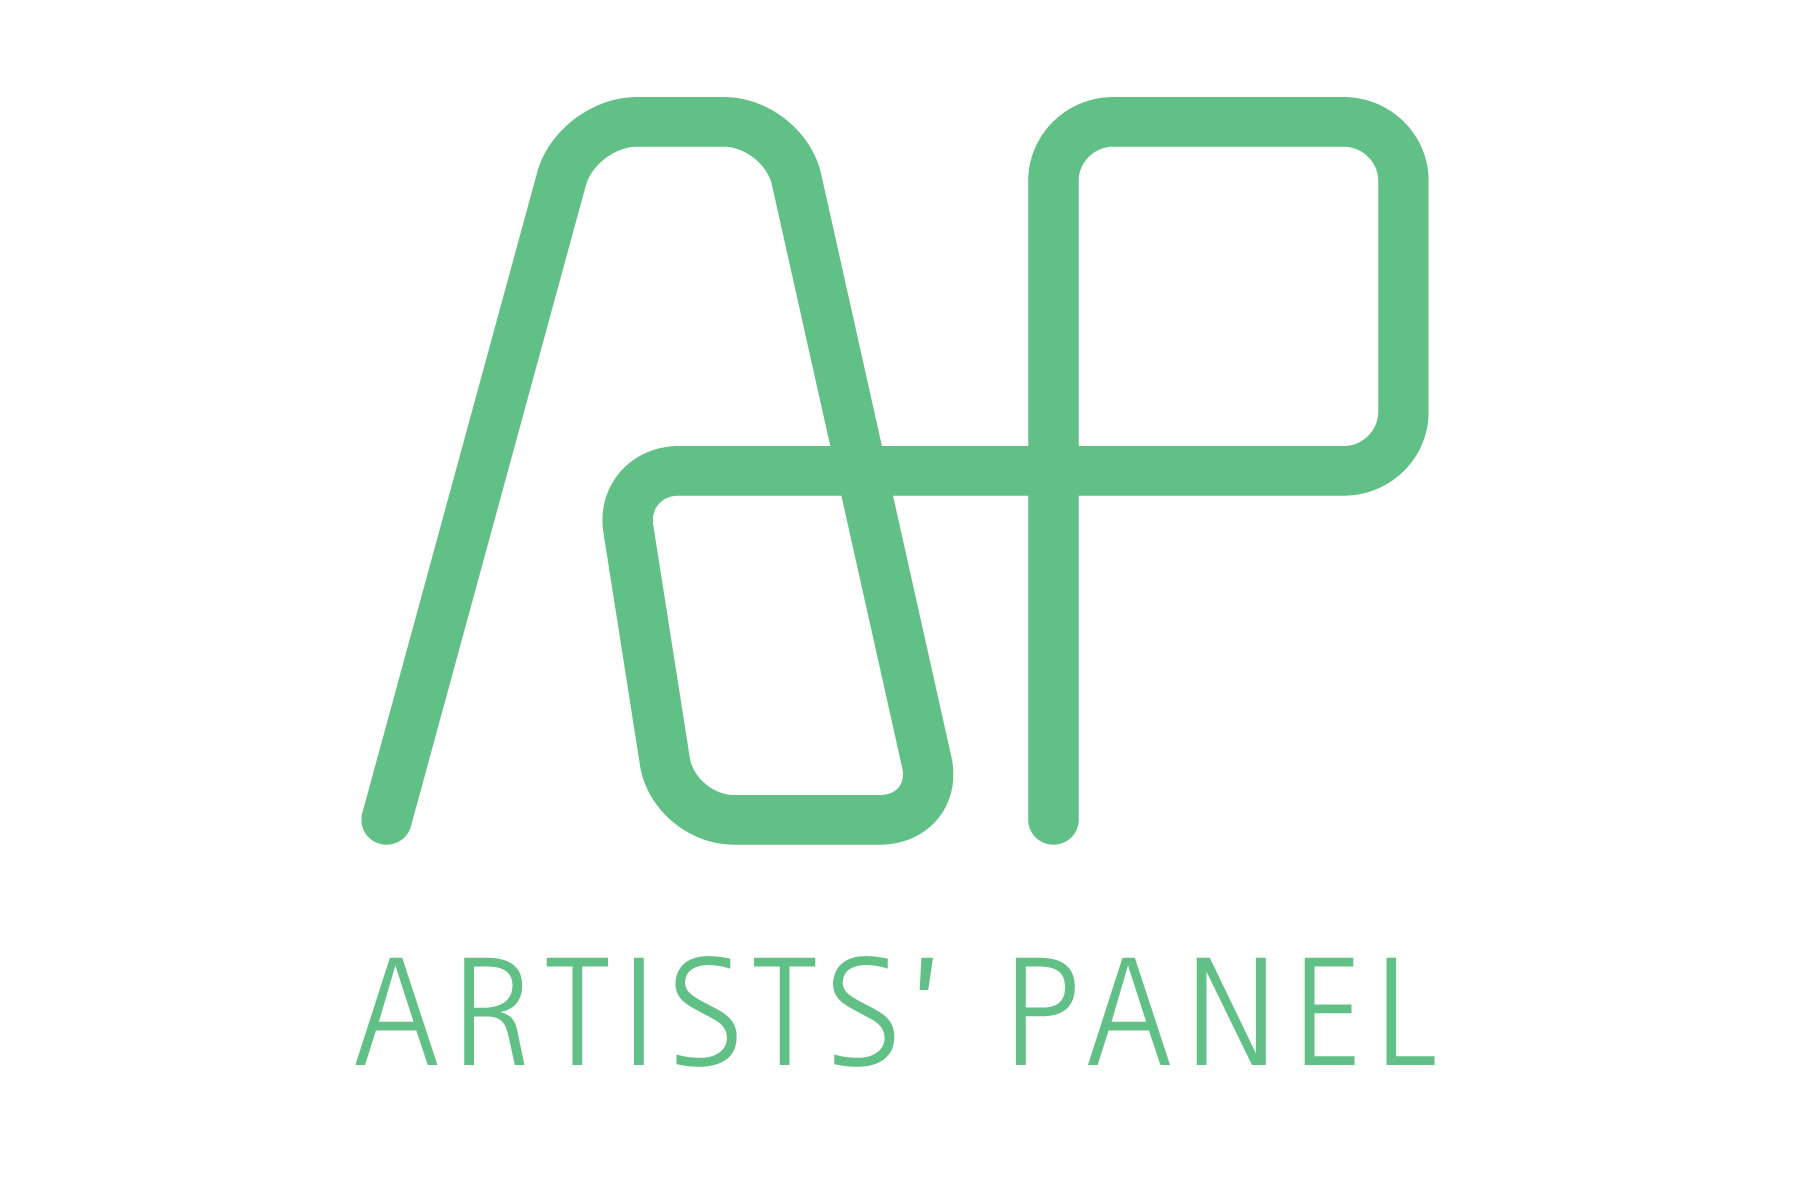 Cover image: Artists' Panel Branding